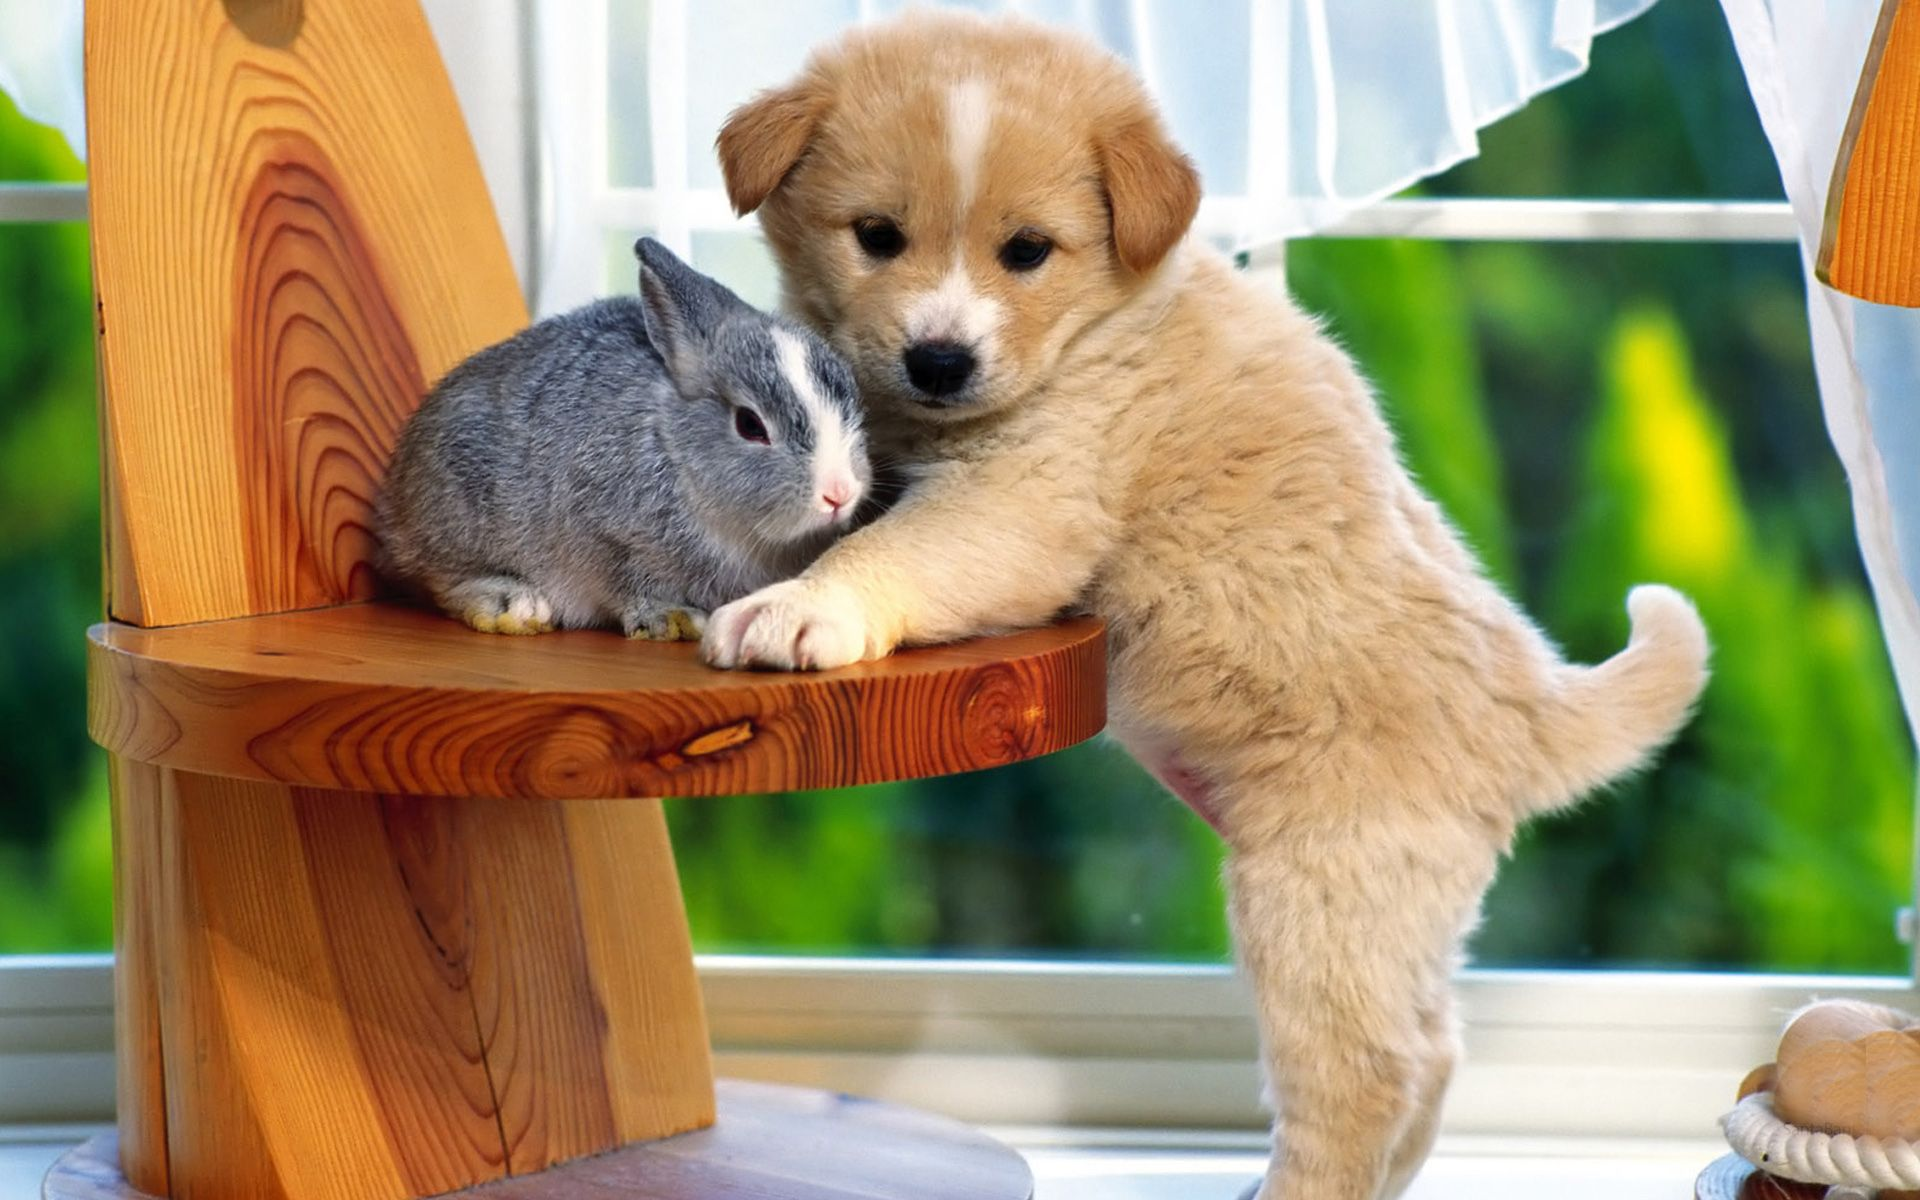 Kitty and Puppy hd wallpaper Free,Download,HD Wallpapers